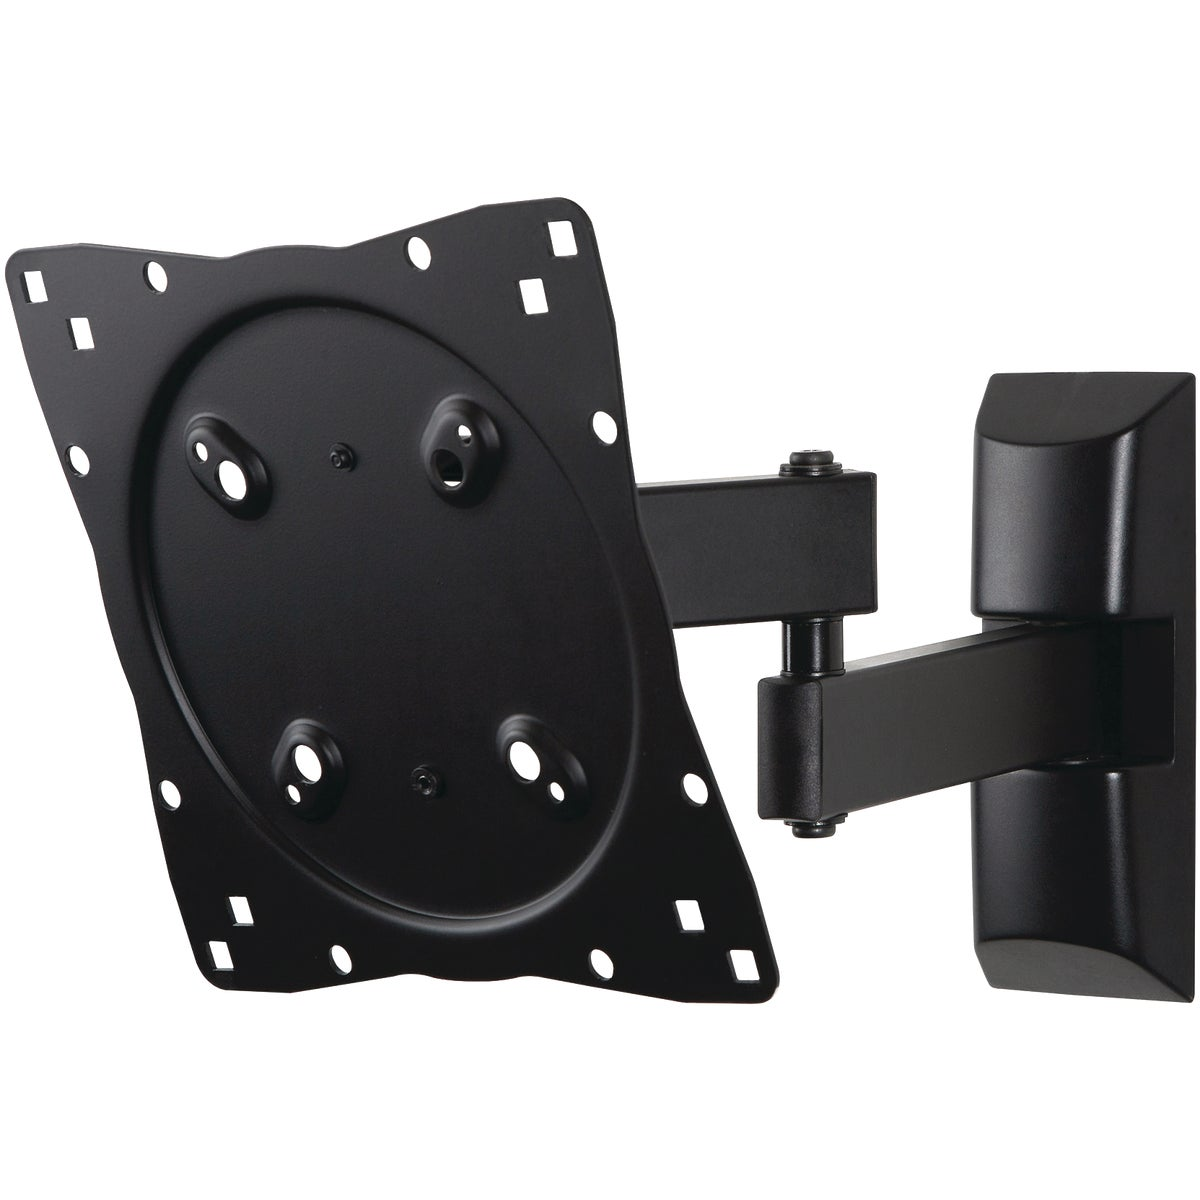 22-37 FULL MOTN TV MOUNT